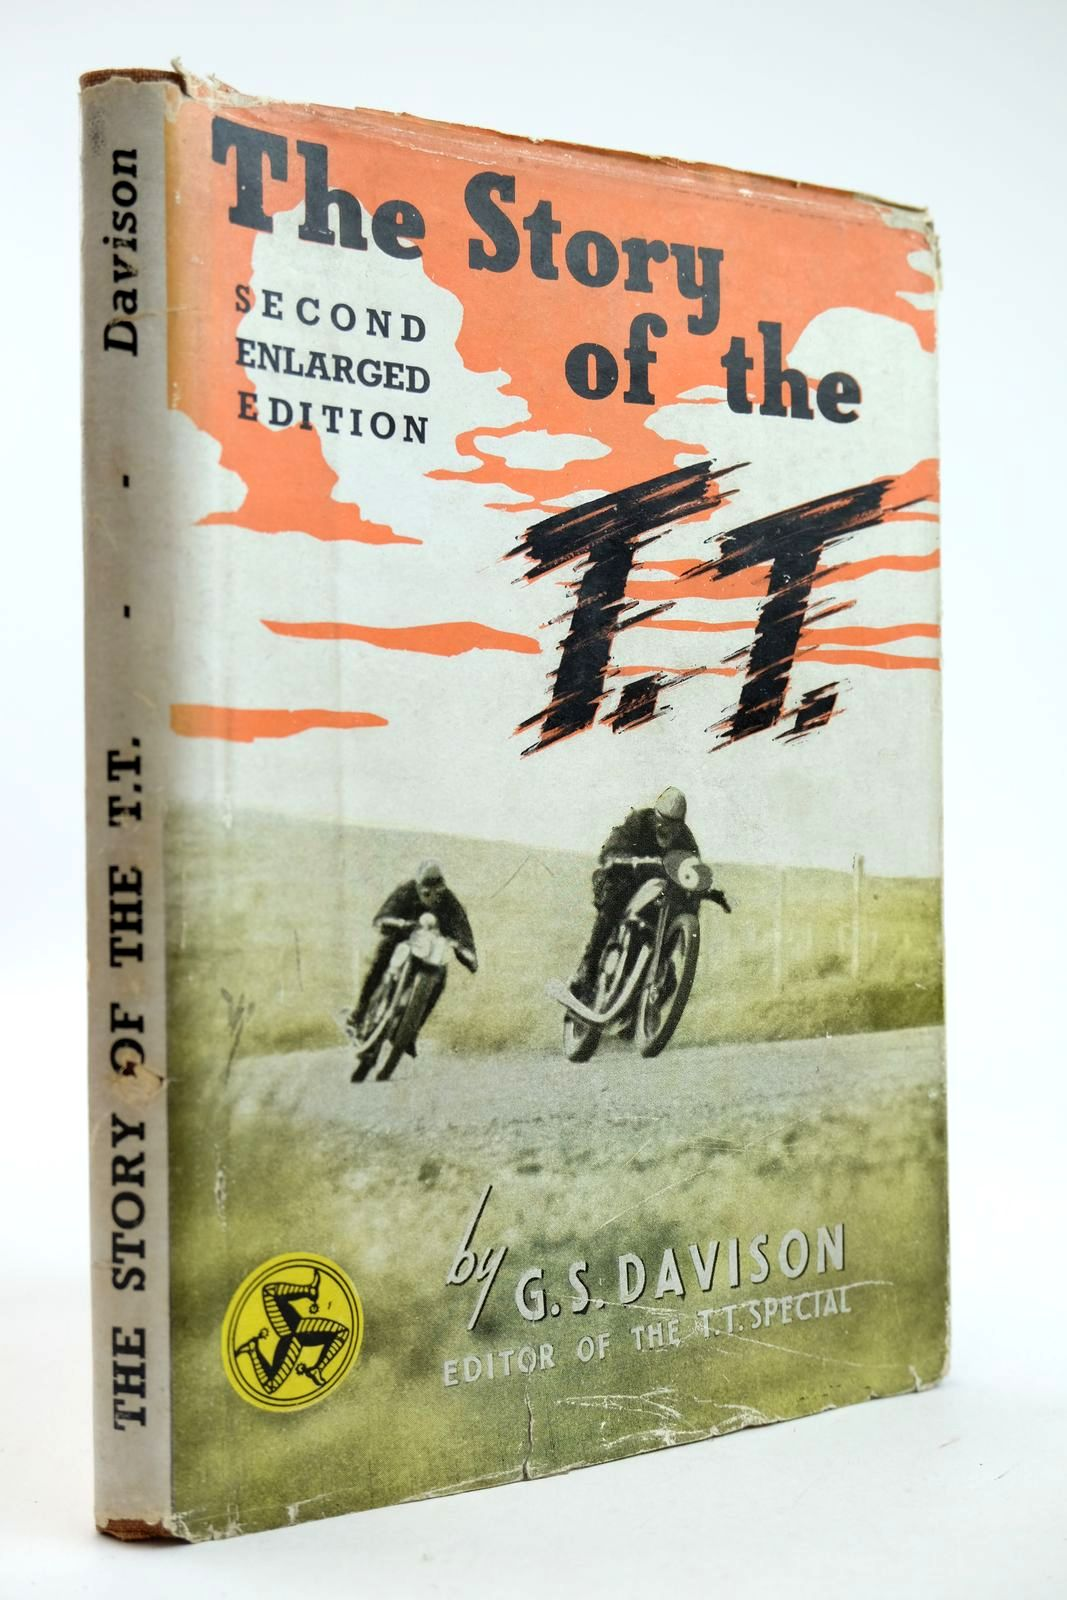 Photo of THE STORY OF THE T.T. written by Davison, G.S. published by The T.T. Special (STOCK CODE: 2132281)  for sale by Stella & Rose's Books